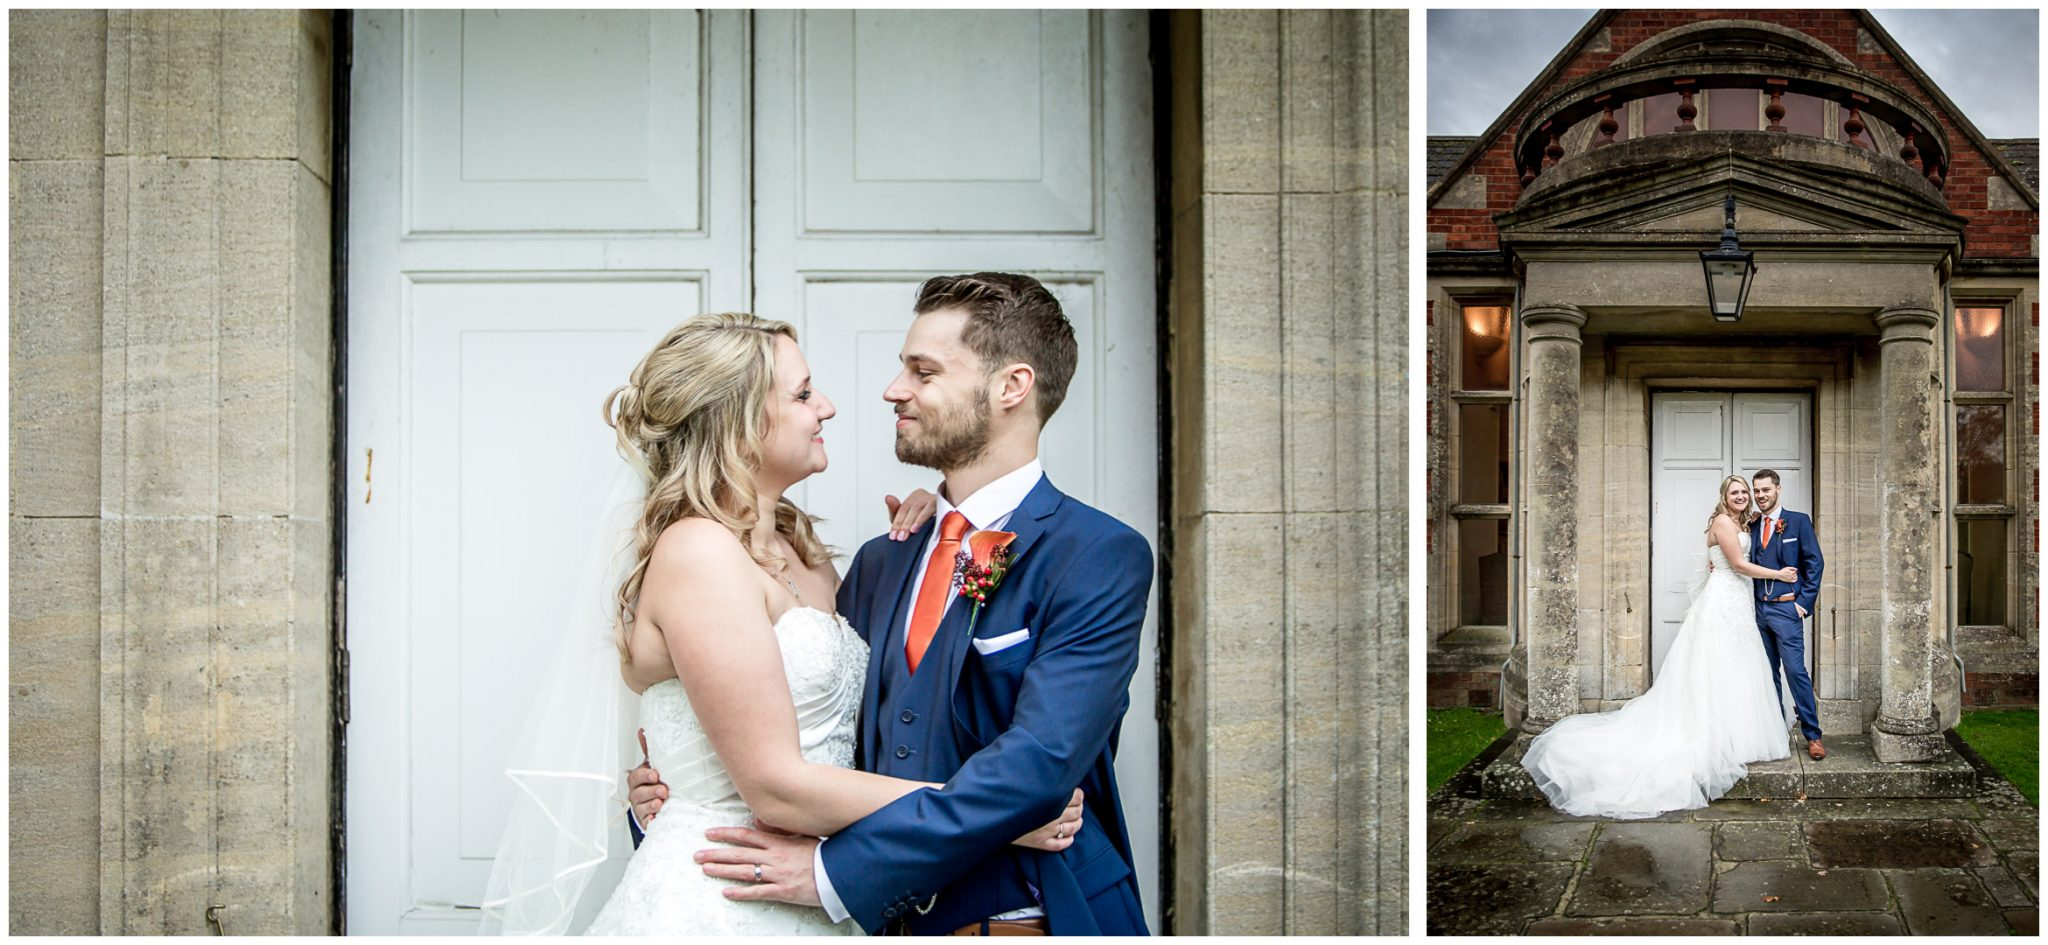 Audleys Wood wedding photograhy couple portraits outside rear door